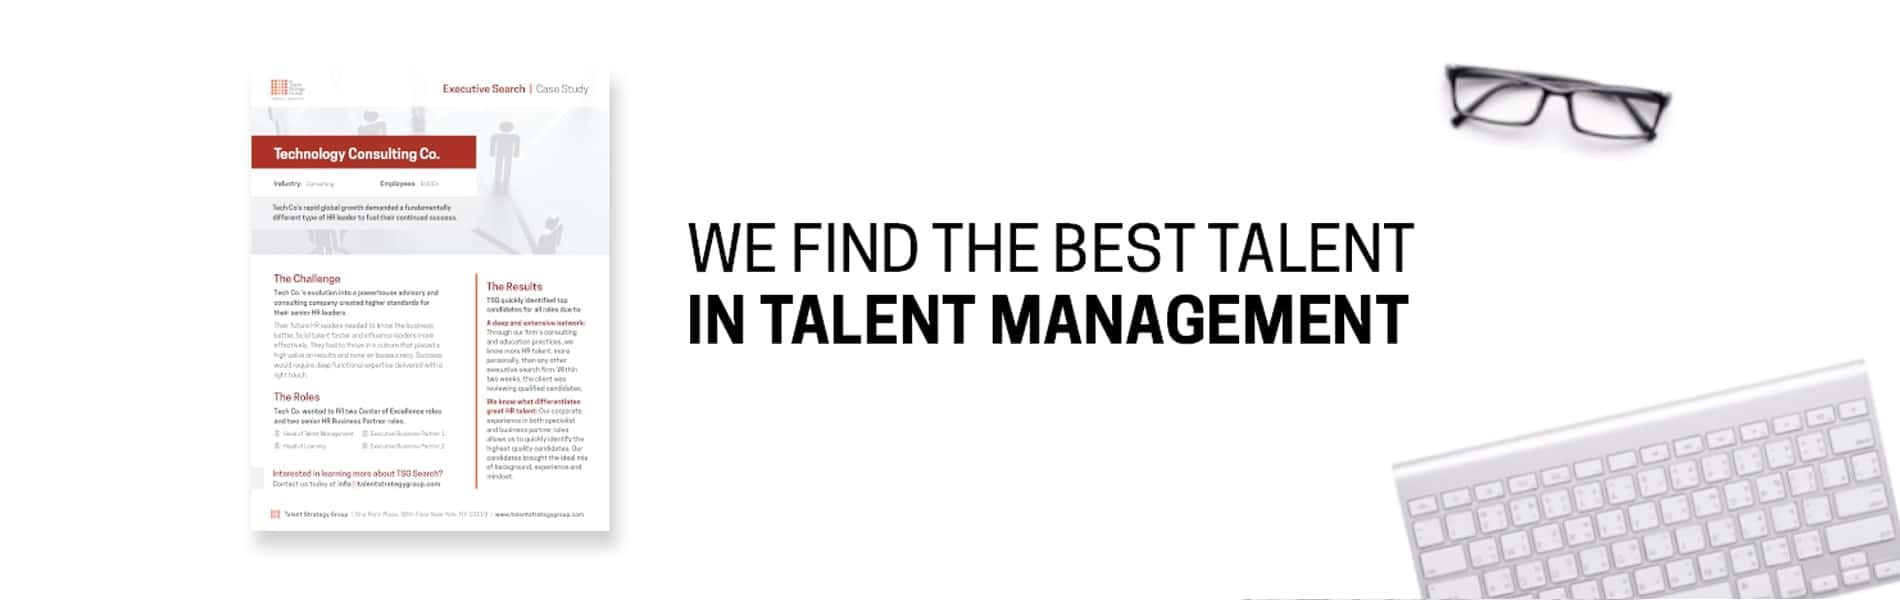 Talent Strategy Group image 4